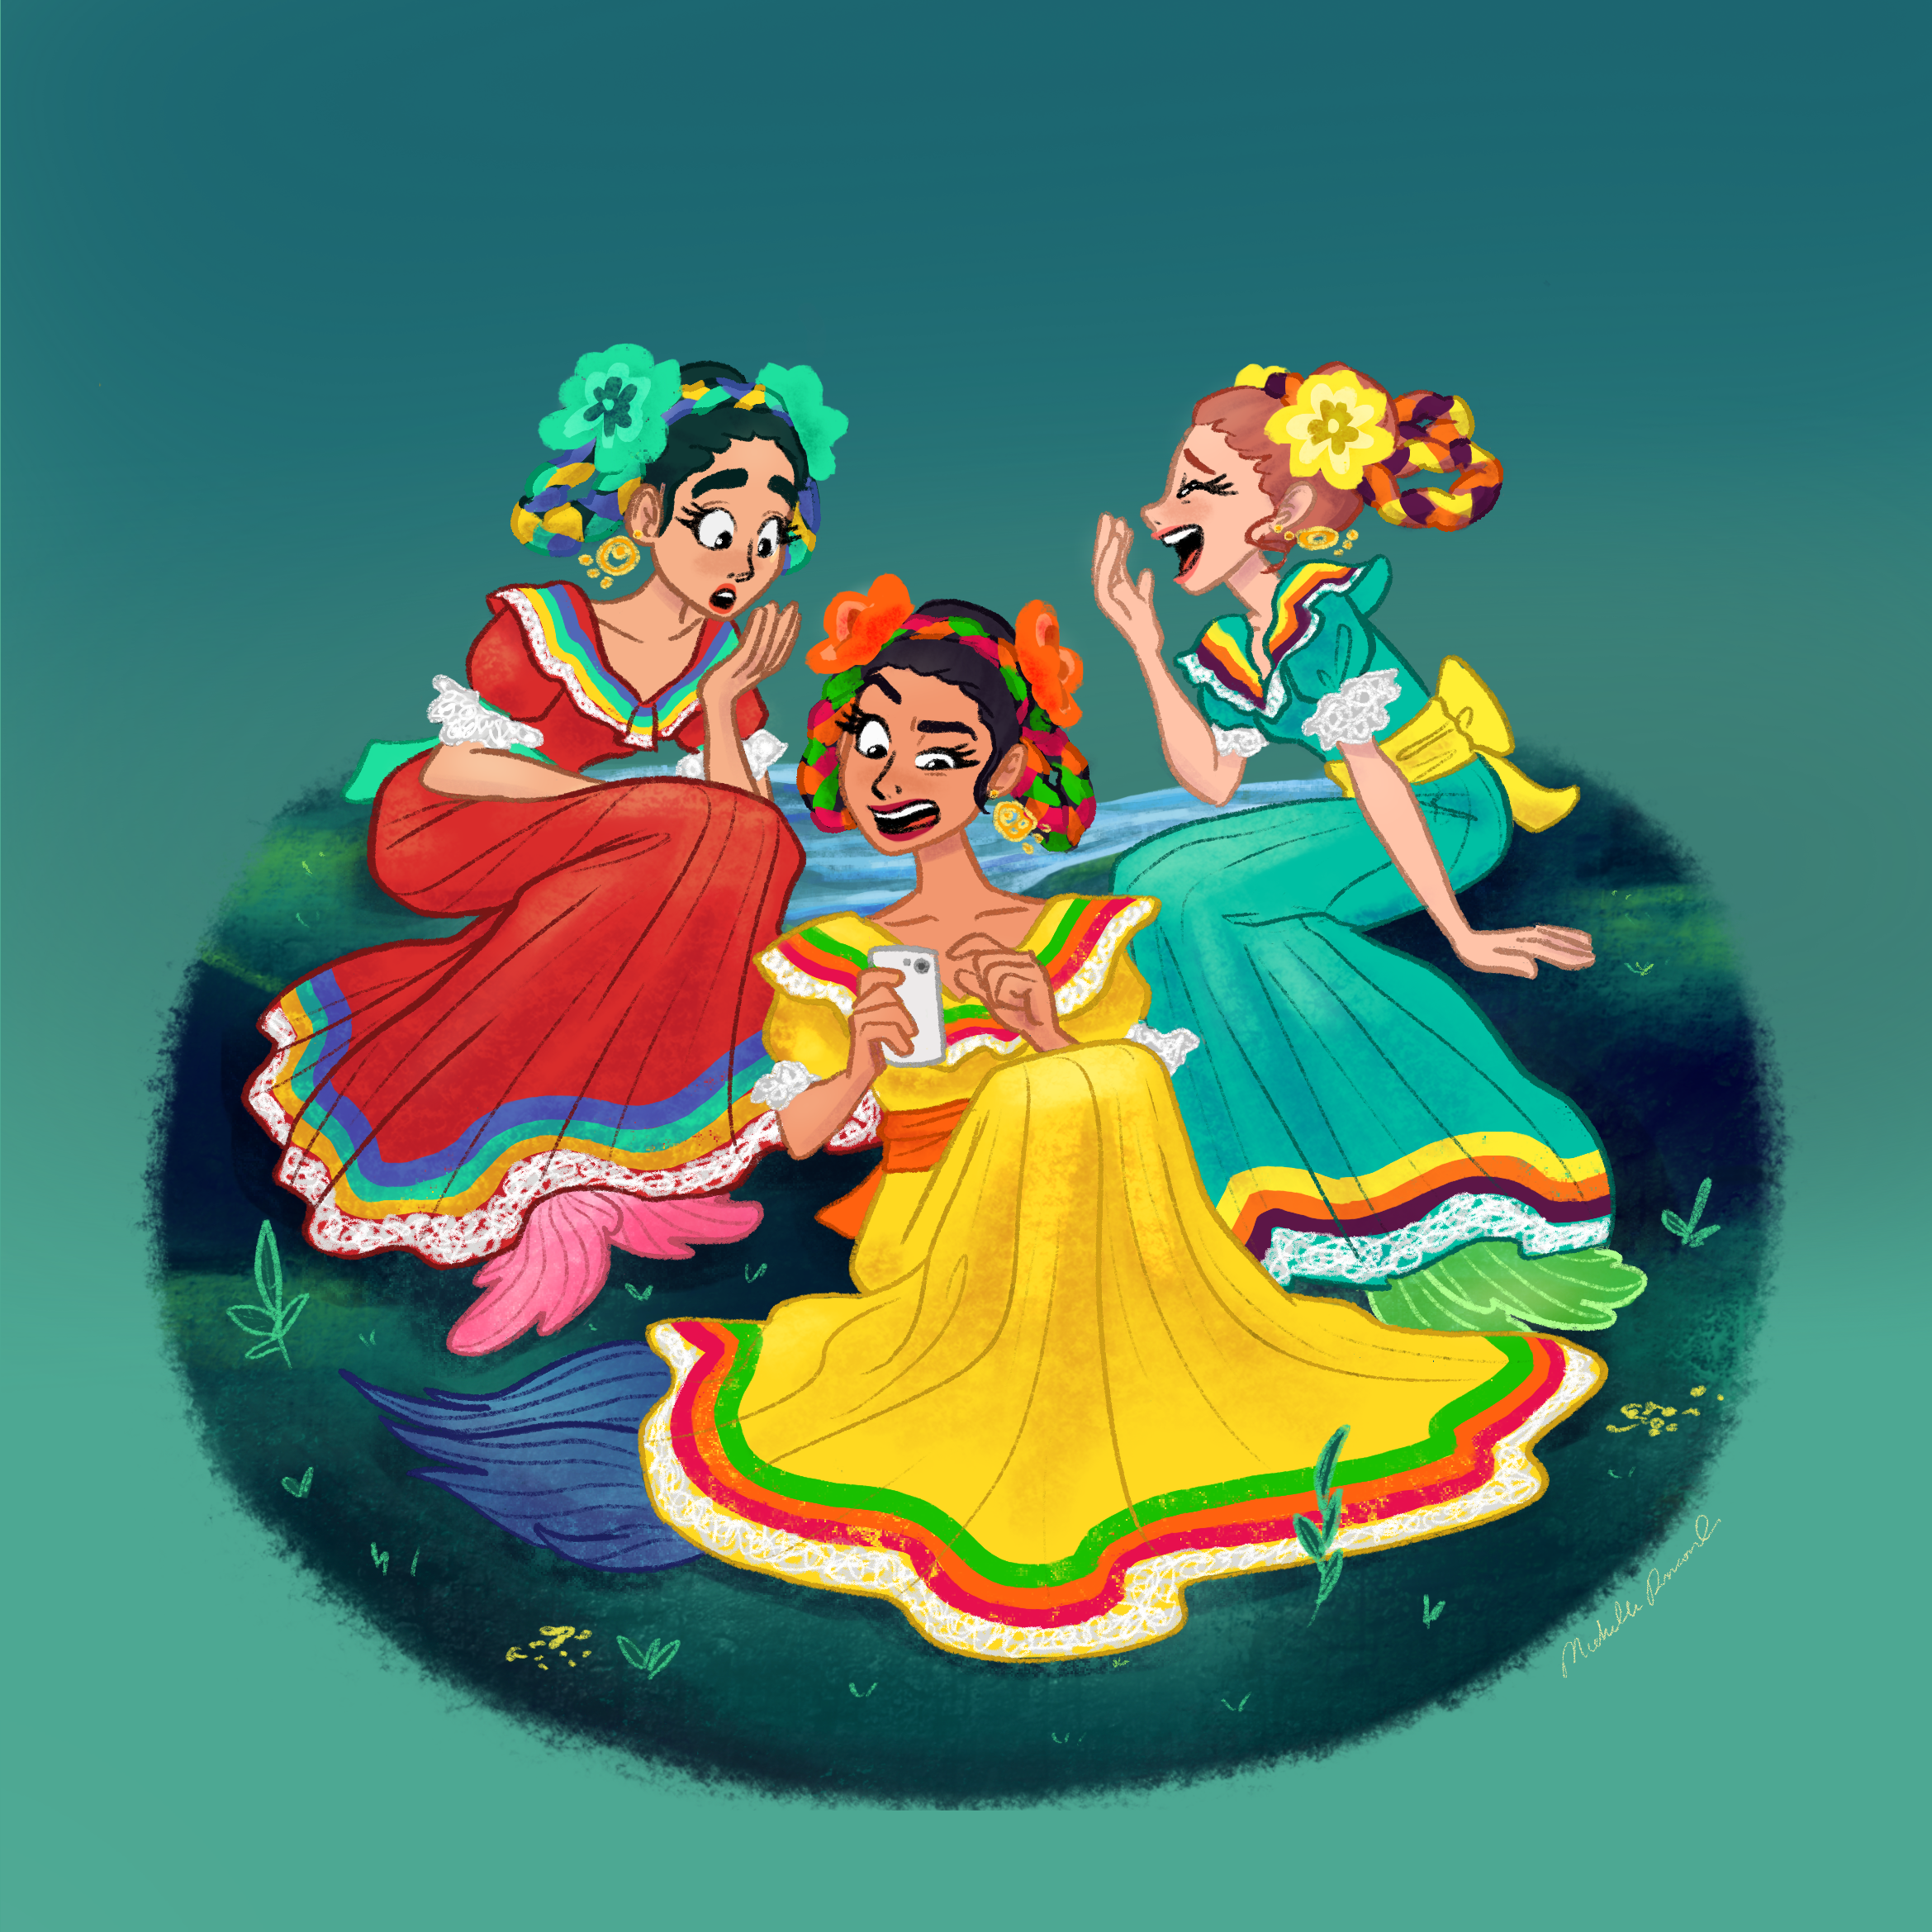 Three Mexican females in traditional dresses playing cards